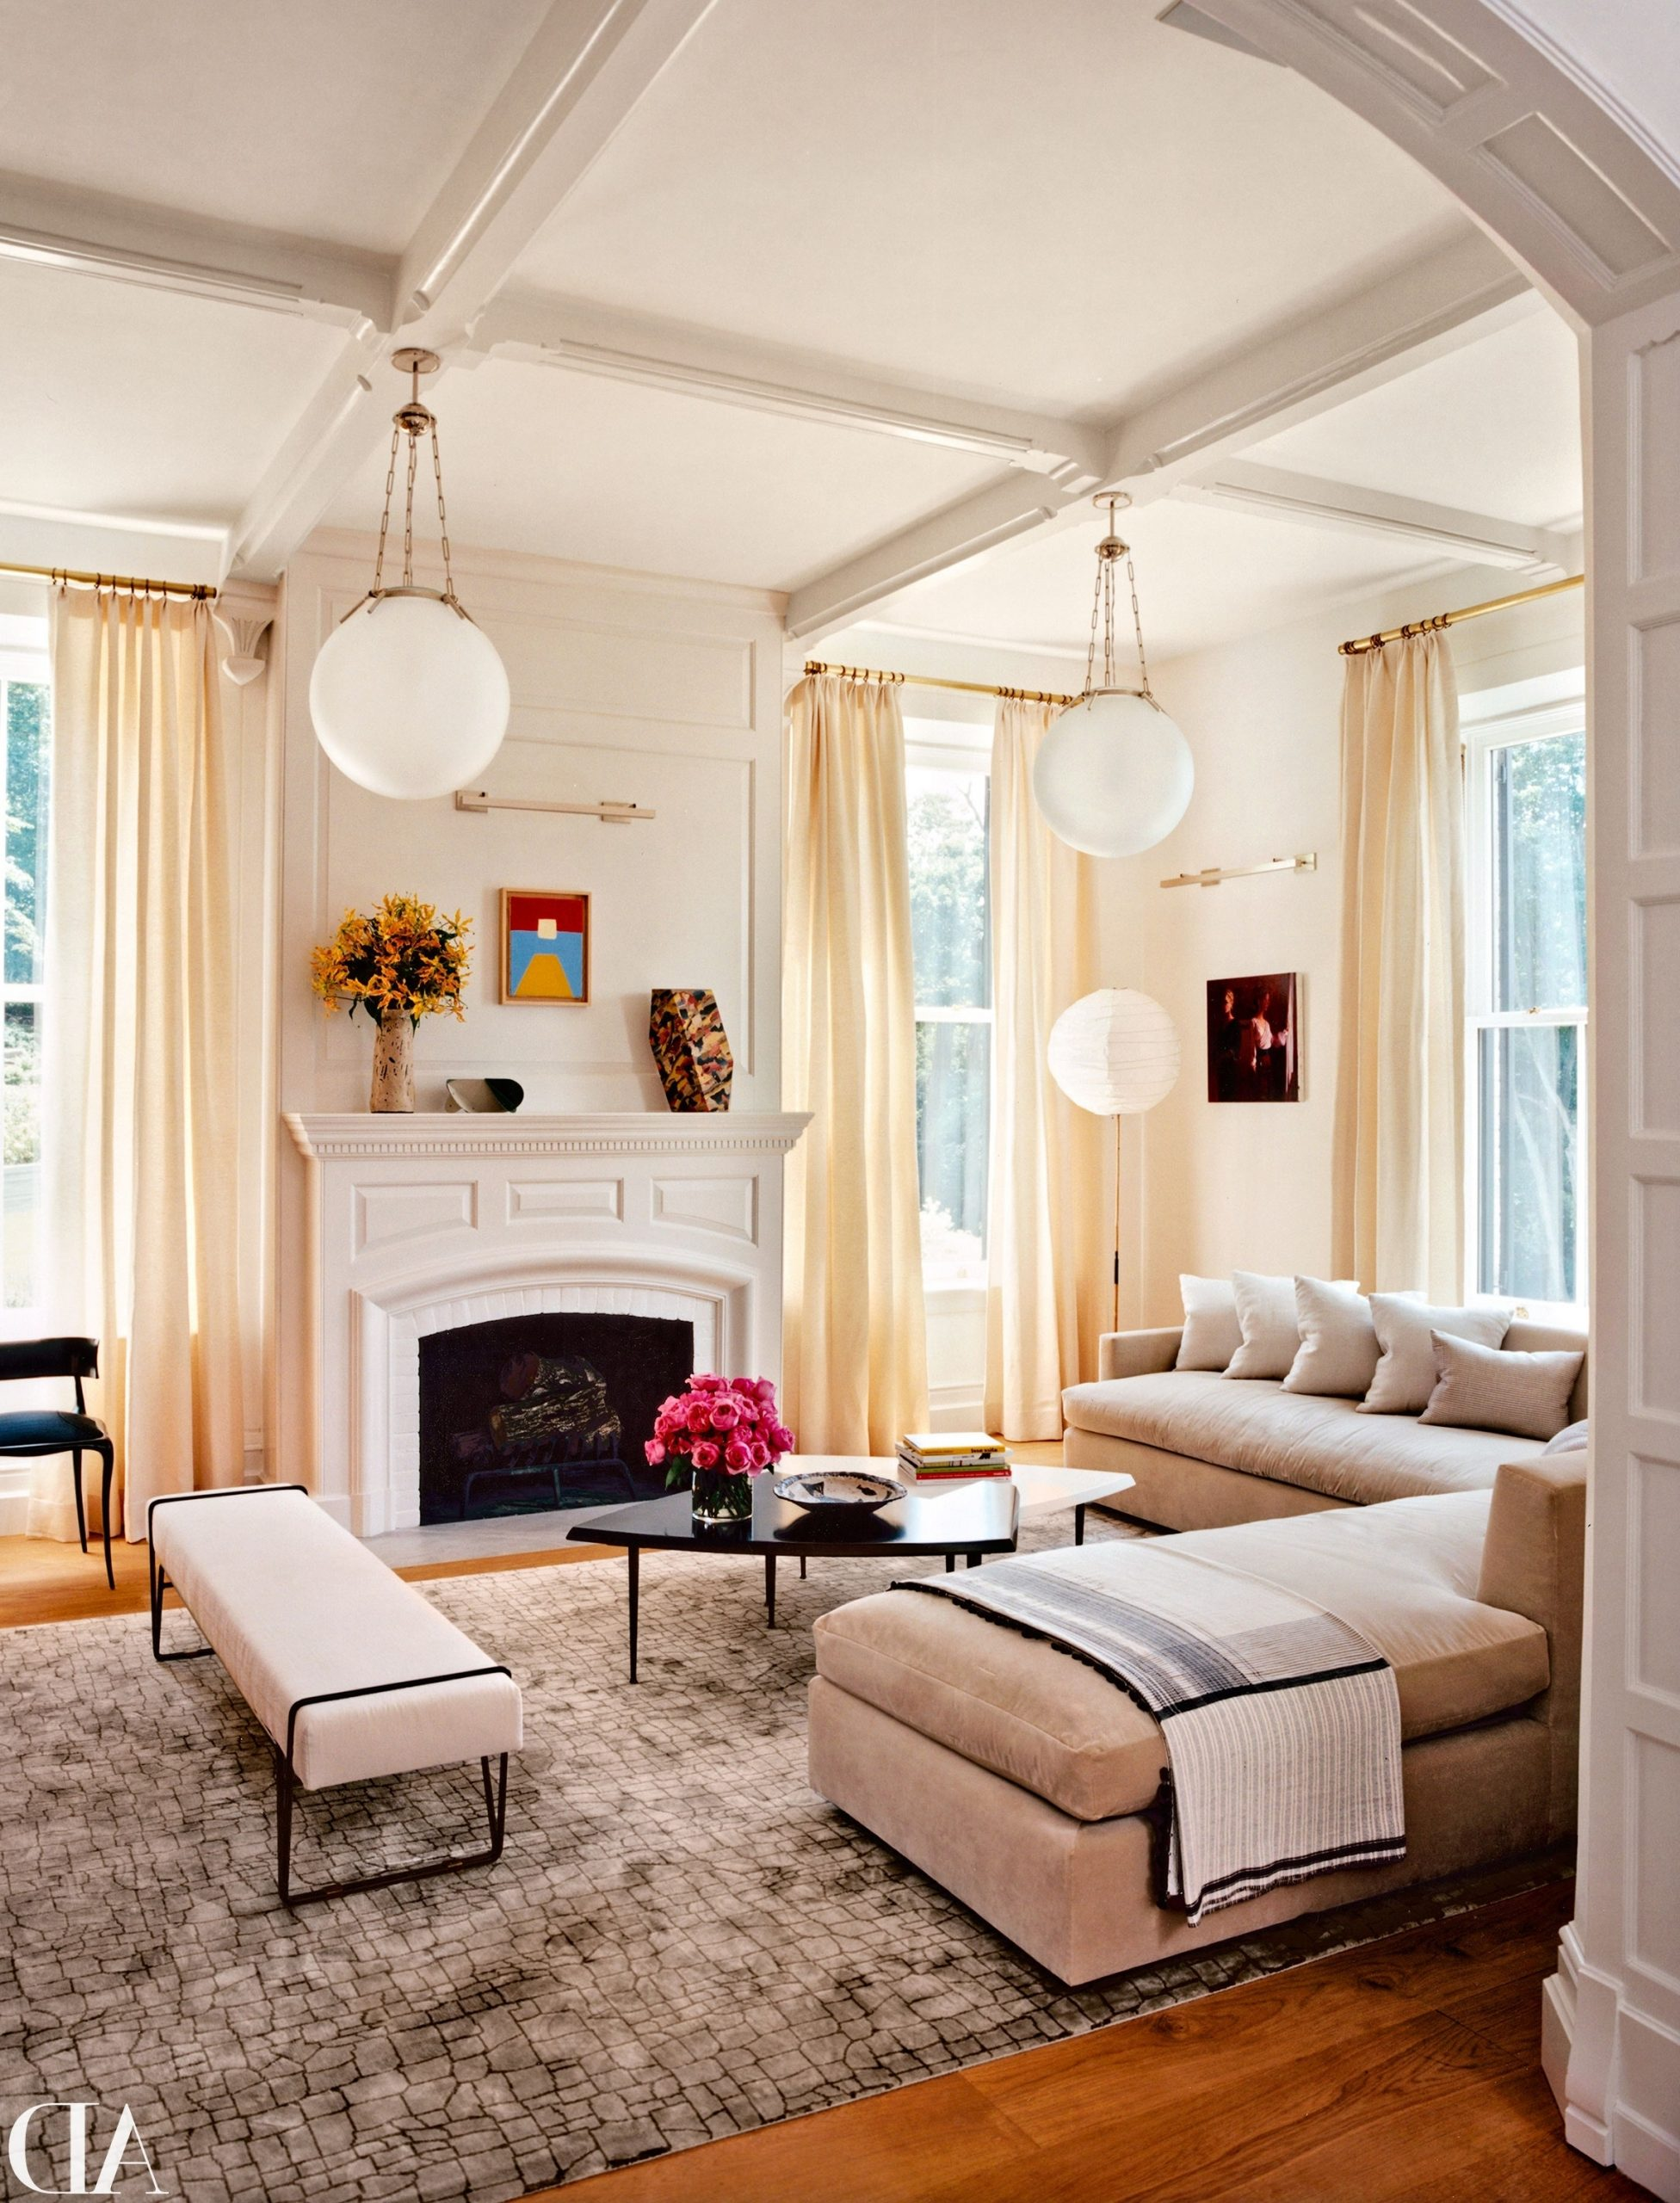 14 Amazing Living Room Makeovers | Architectural Digest 10+ Architectural Digest Small Living Room Ideas